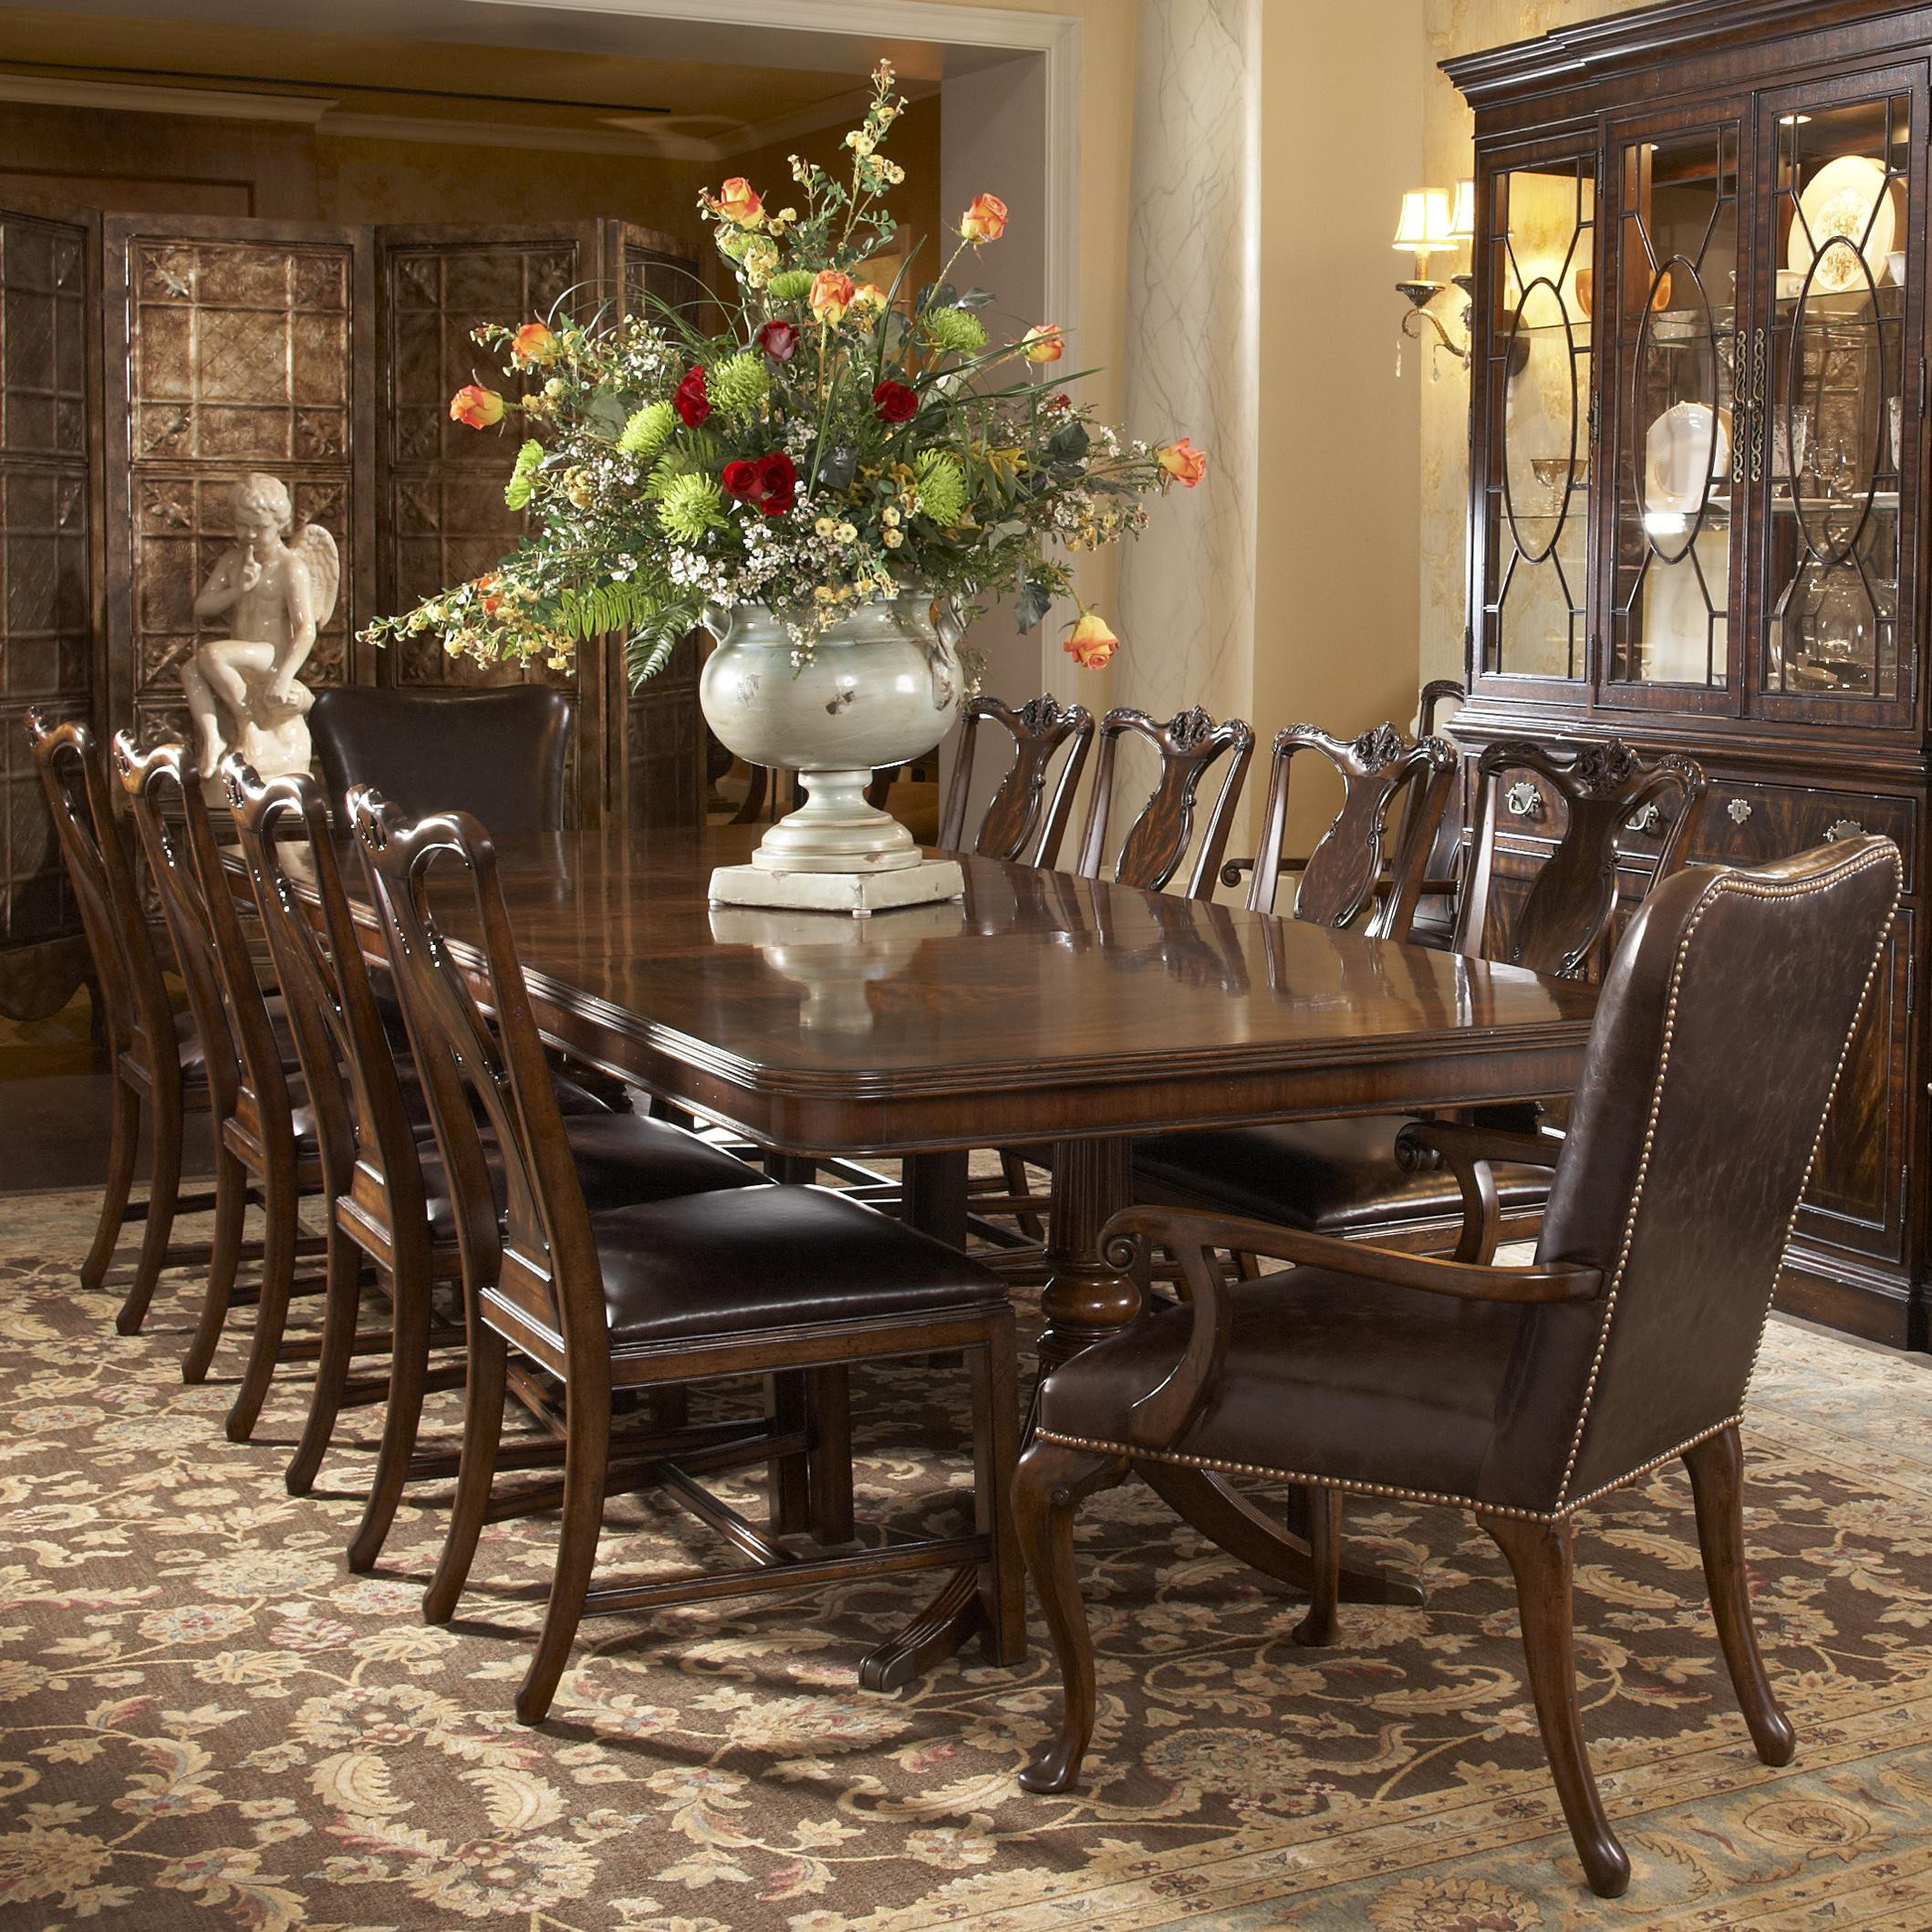 Best ideas about Dining Table And Chair Set . Save or Pin 11 Piece Dining Room Set Now.